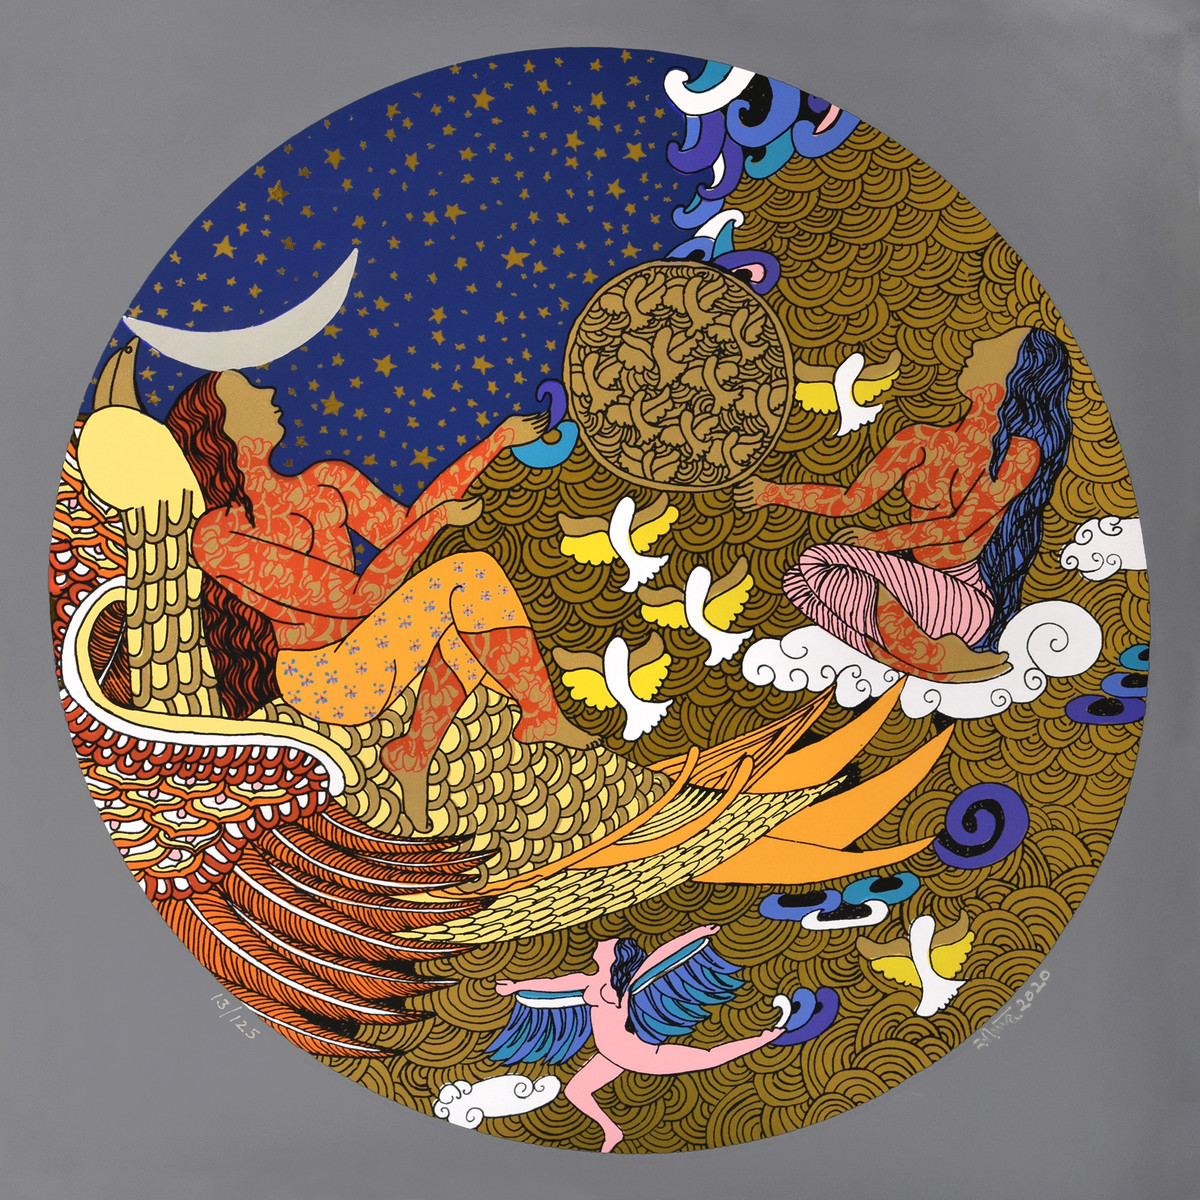 The Golden Womb - 3 by Seema Kohli, Expressionism Serigraph, Serigraph on Metallic film pasted on paper, Brown color